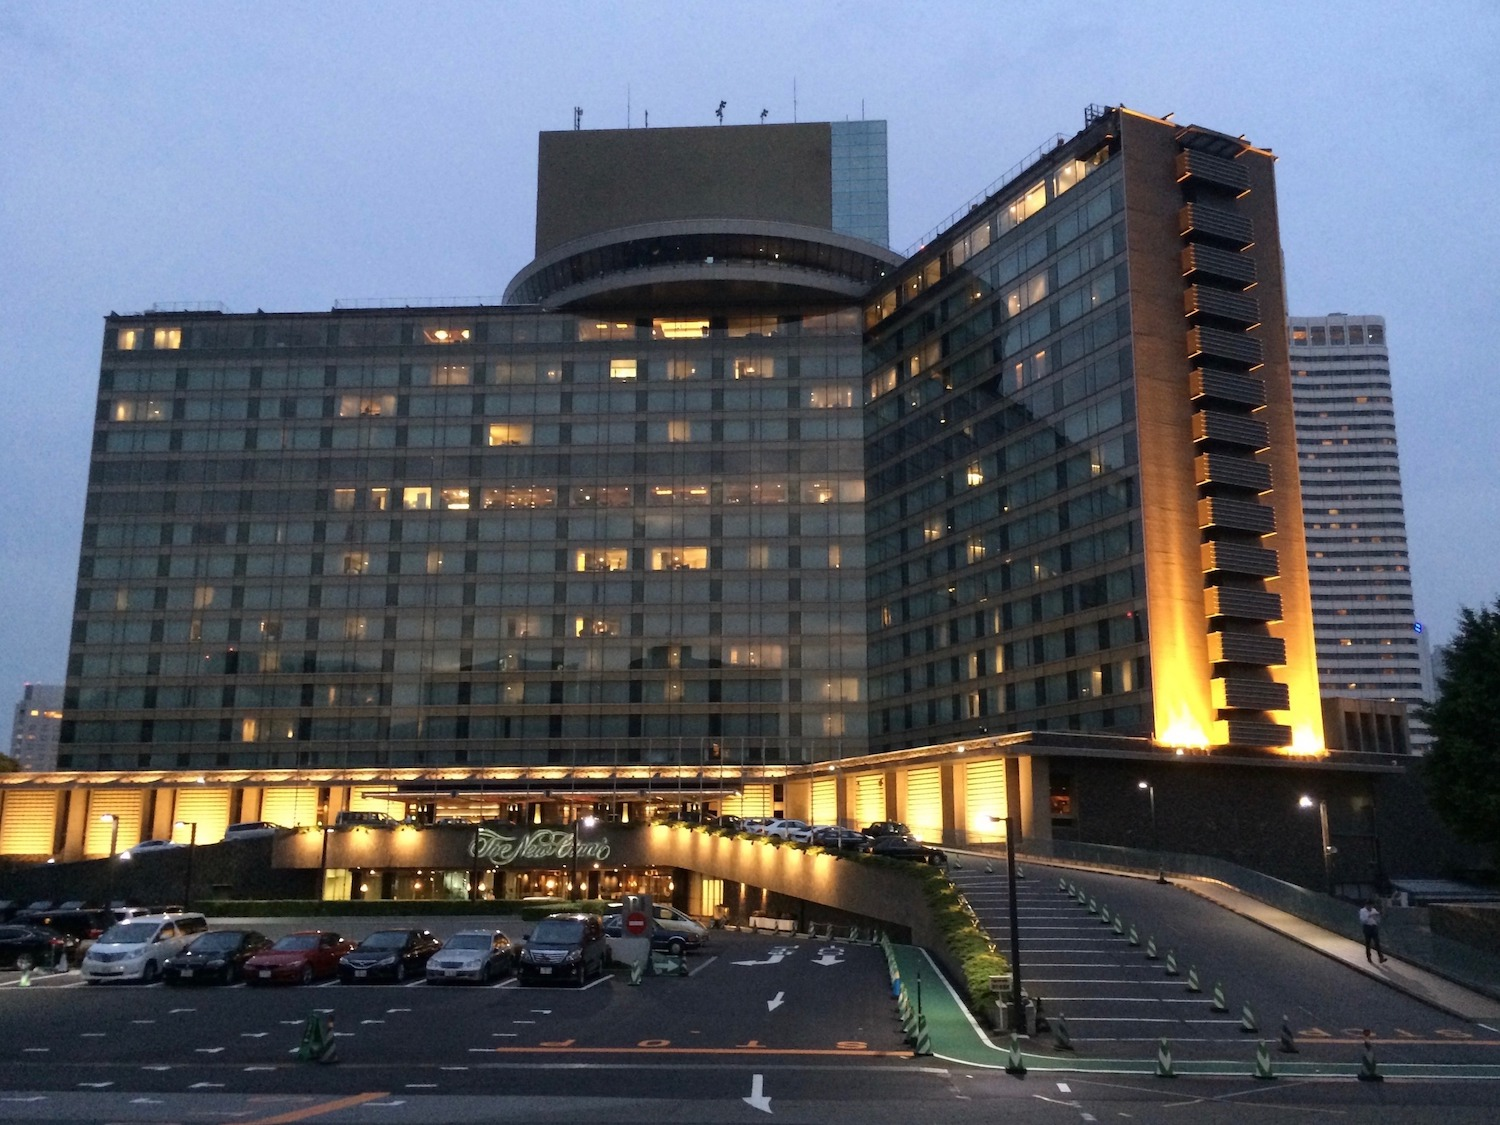 The   Hotel New Otani Tokyo,   which doubled as the headquarters of Osato Chemicals in  You Only Live Twice  (1967).